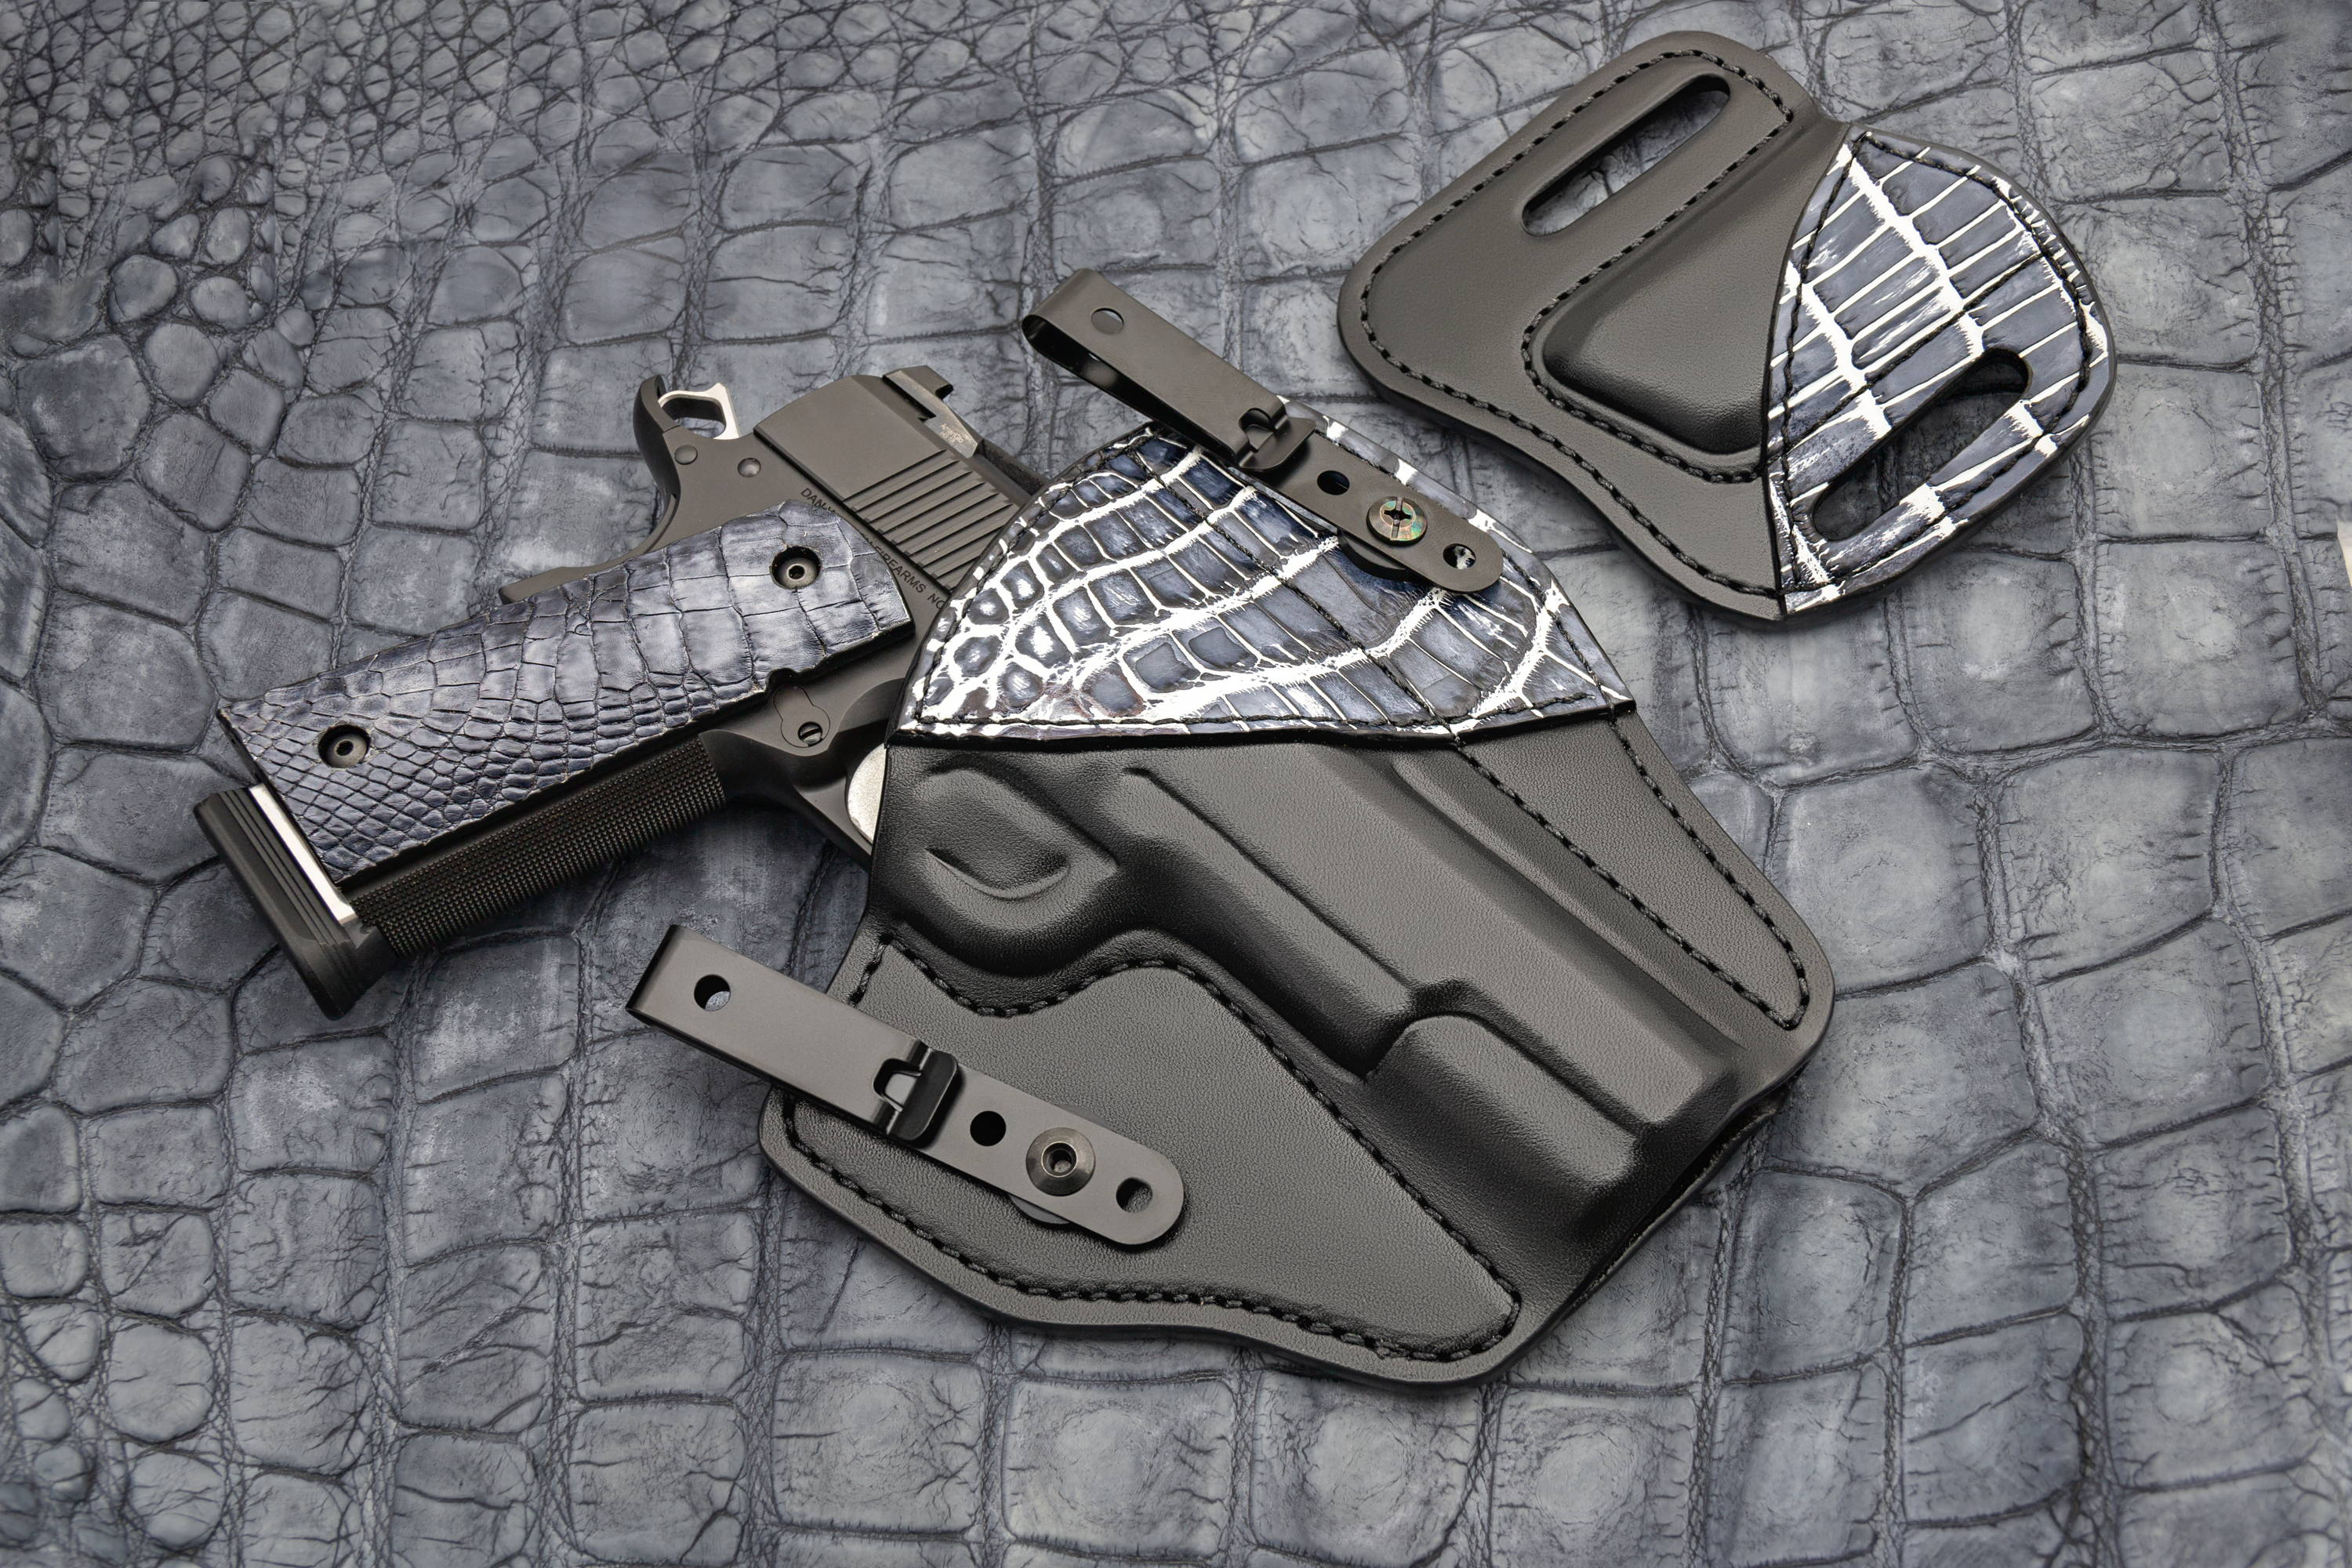 Handguns we make holsters for